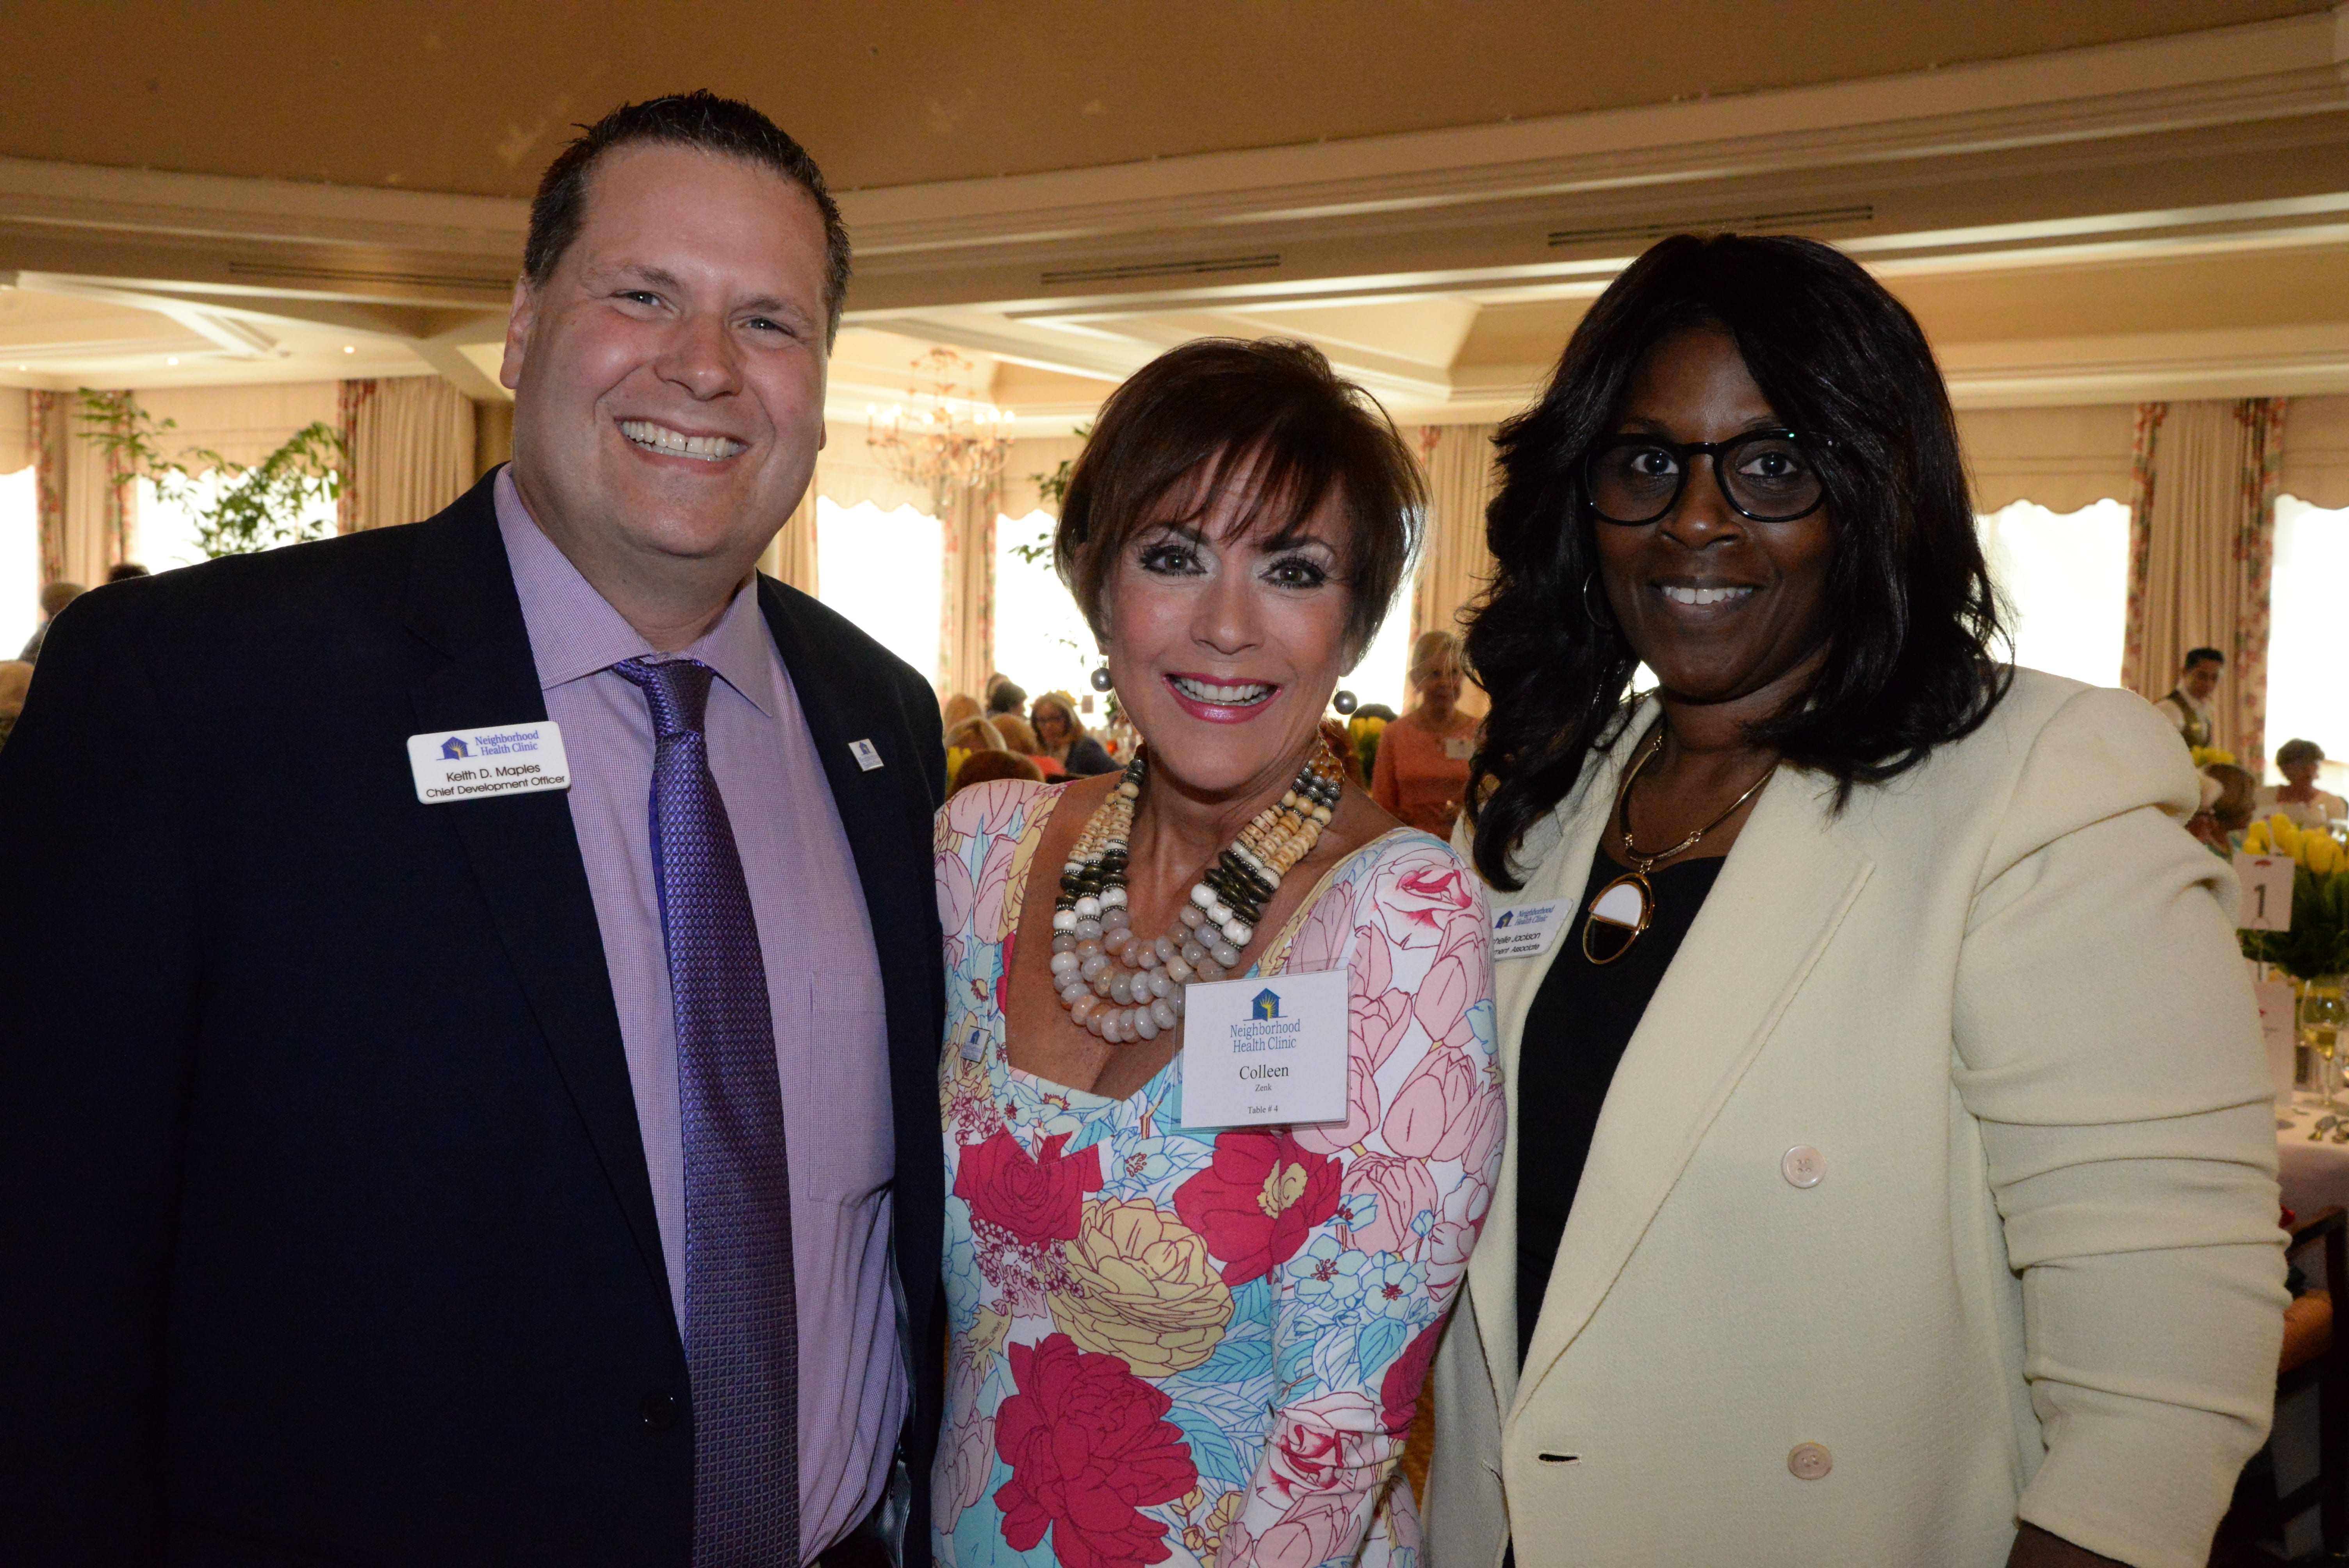 Keith Maples, Actress Colleen Zenk, Rochelle Jackson